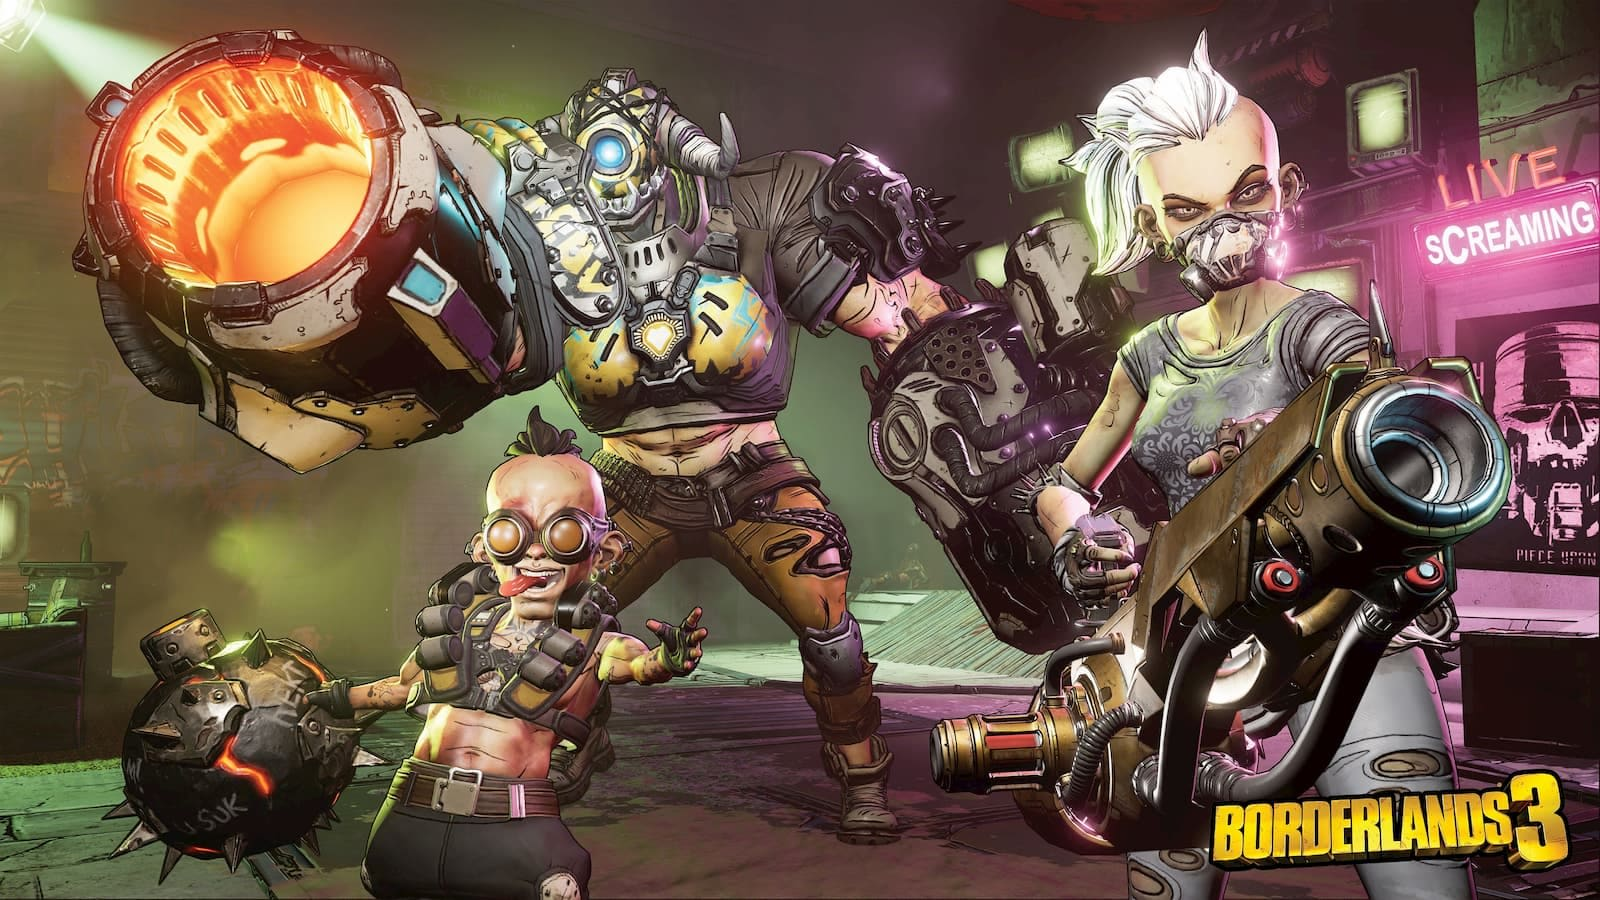 Borderlands 3' will arrive September 13th on PC, PS4 and